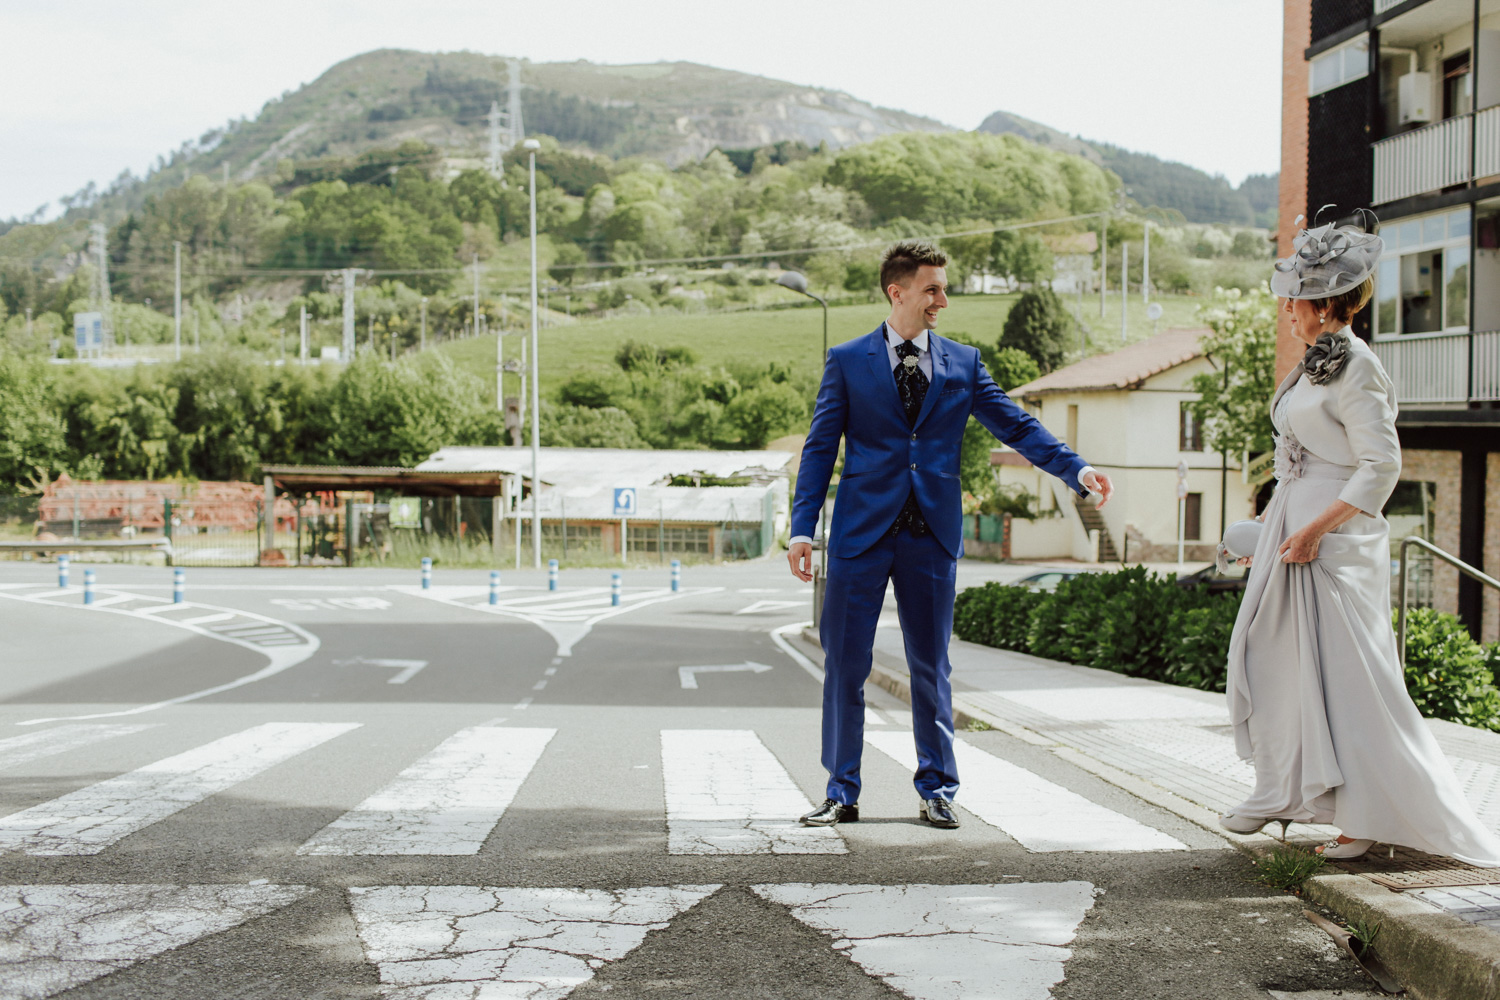 26 2 Fotografo de bodas - Destination wedding photographer san sebastian and worlwide-31